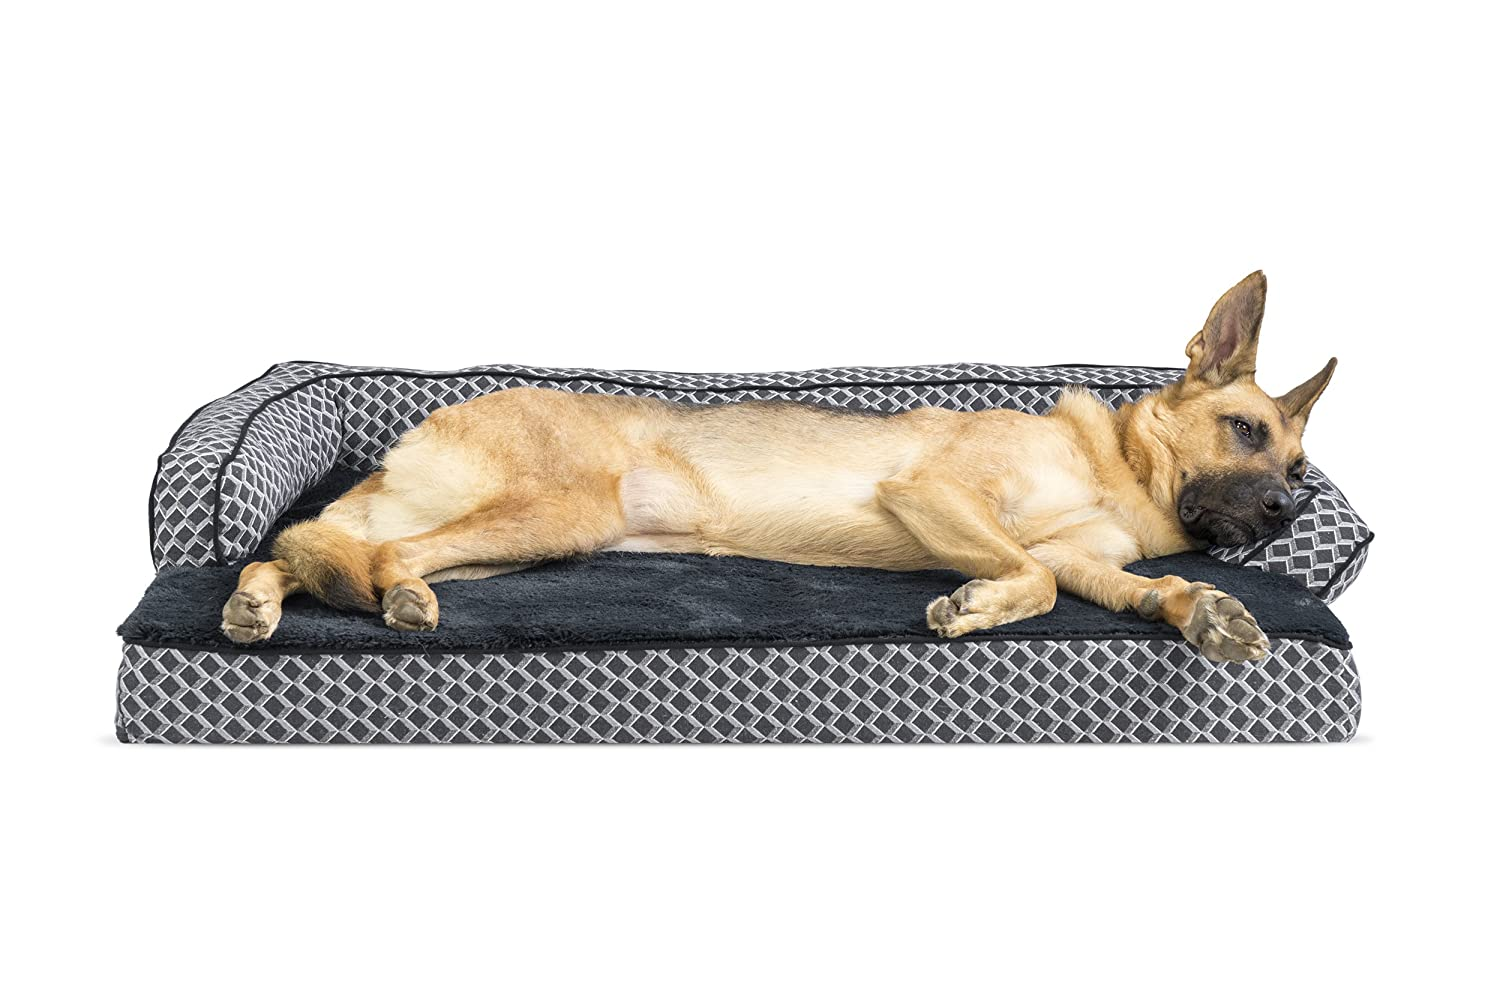 FurHaven Pet Dog Bed   Memory Foam Plush & Decor Comfy Couch Sofa-Style Pet Bed for Dogs & Cats, Diamond Grey, Jumbo